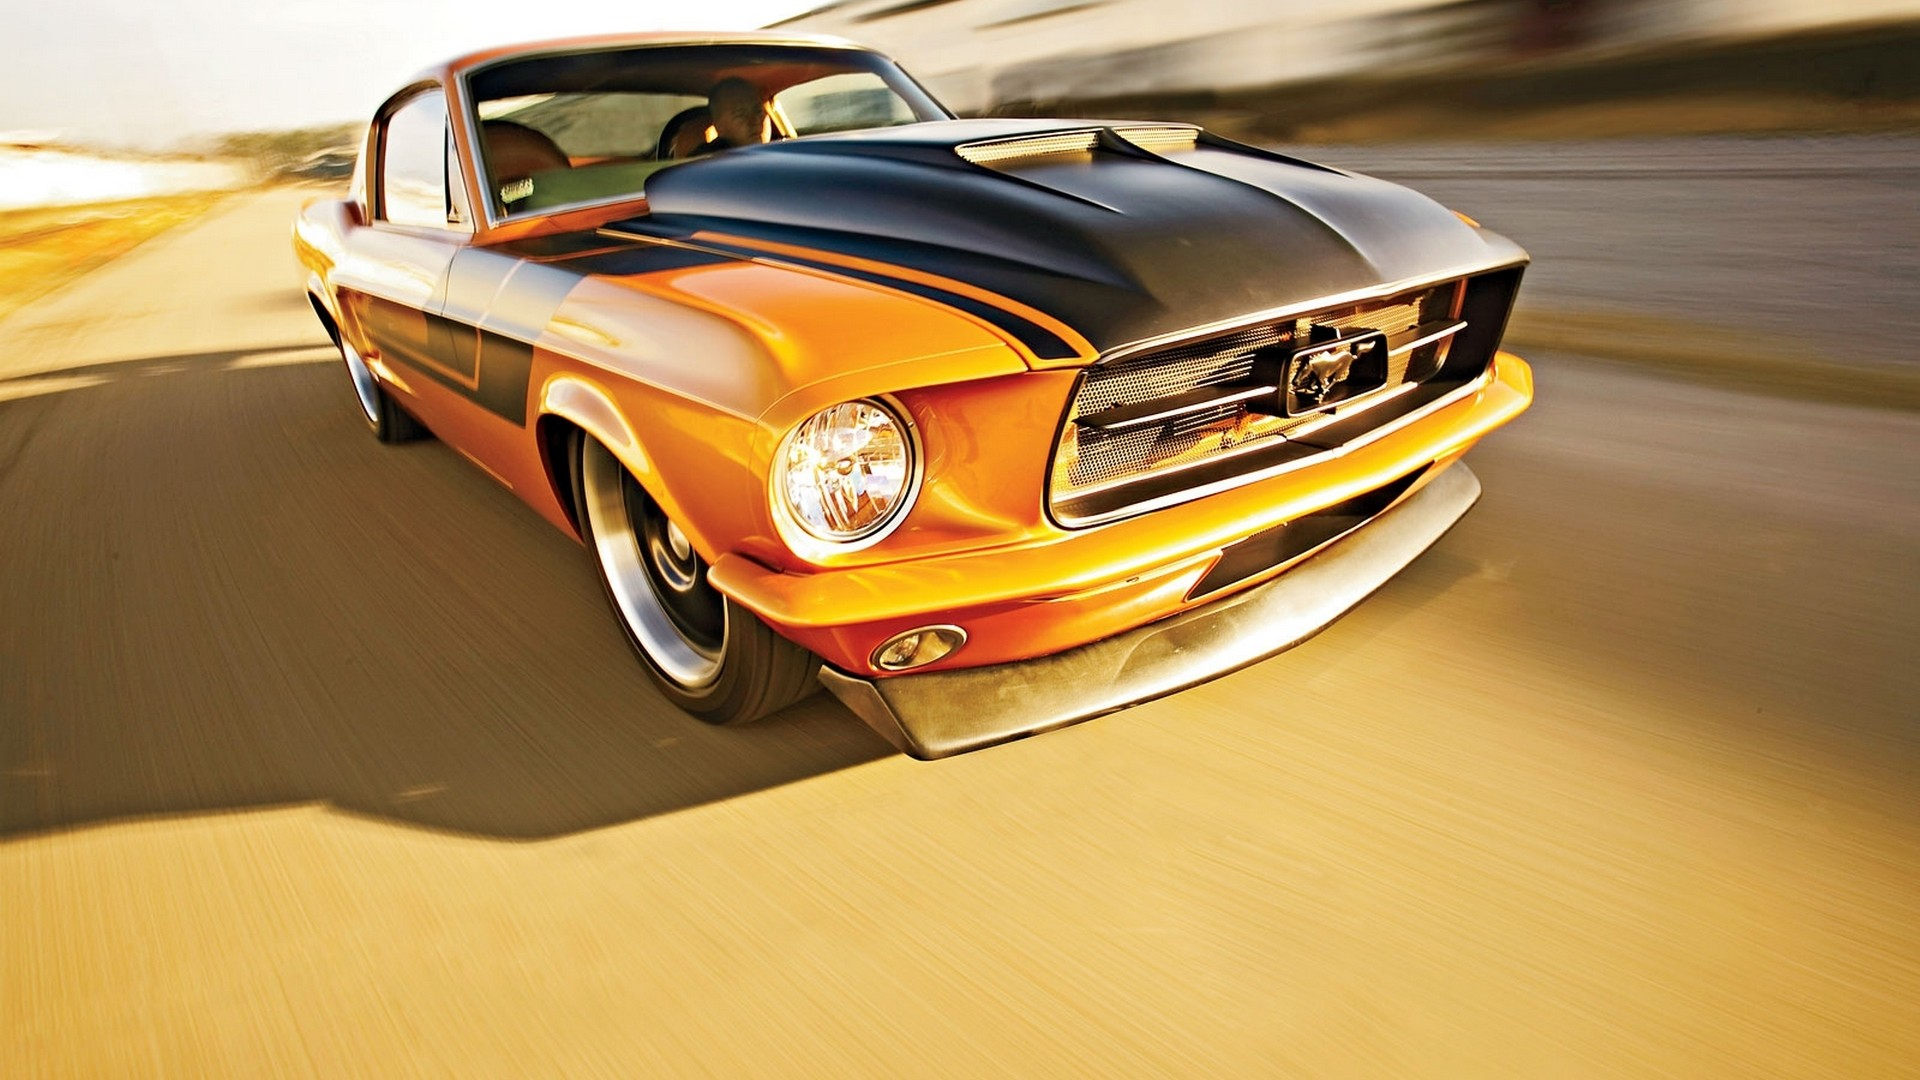 Ford Mustang Hd Wallpaper Background Image 1920x1080 Id 432091